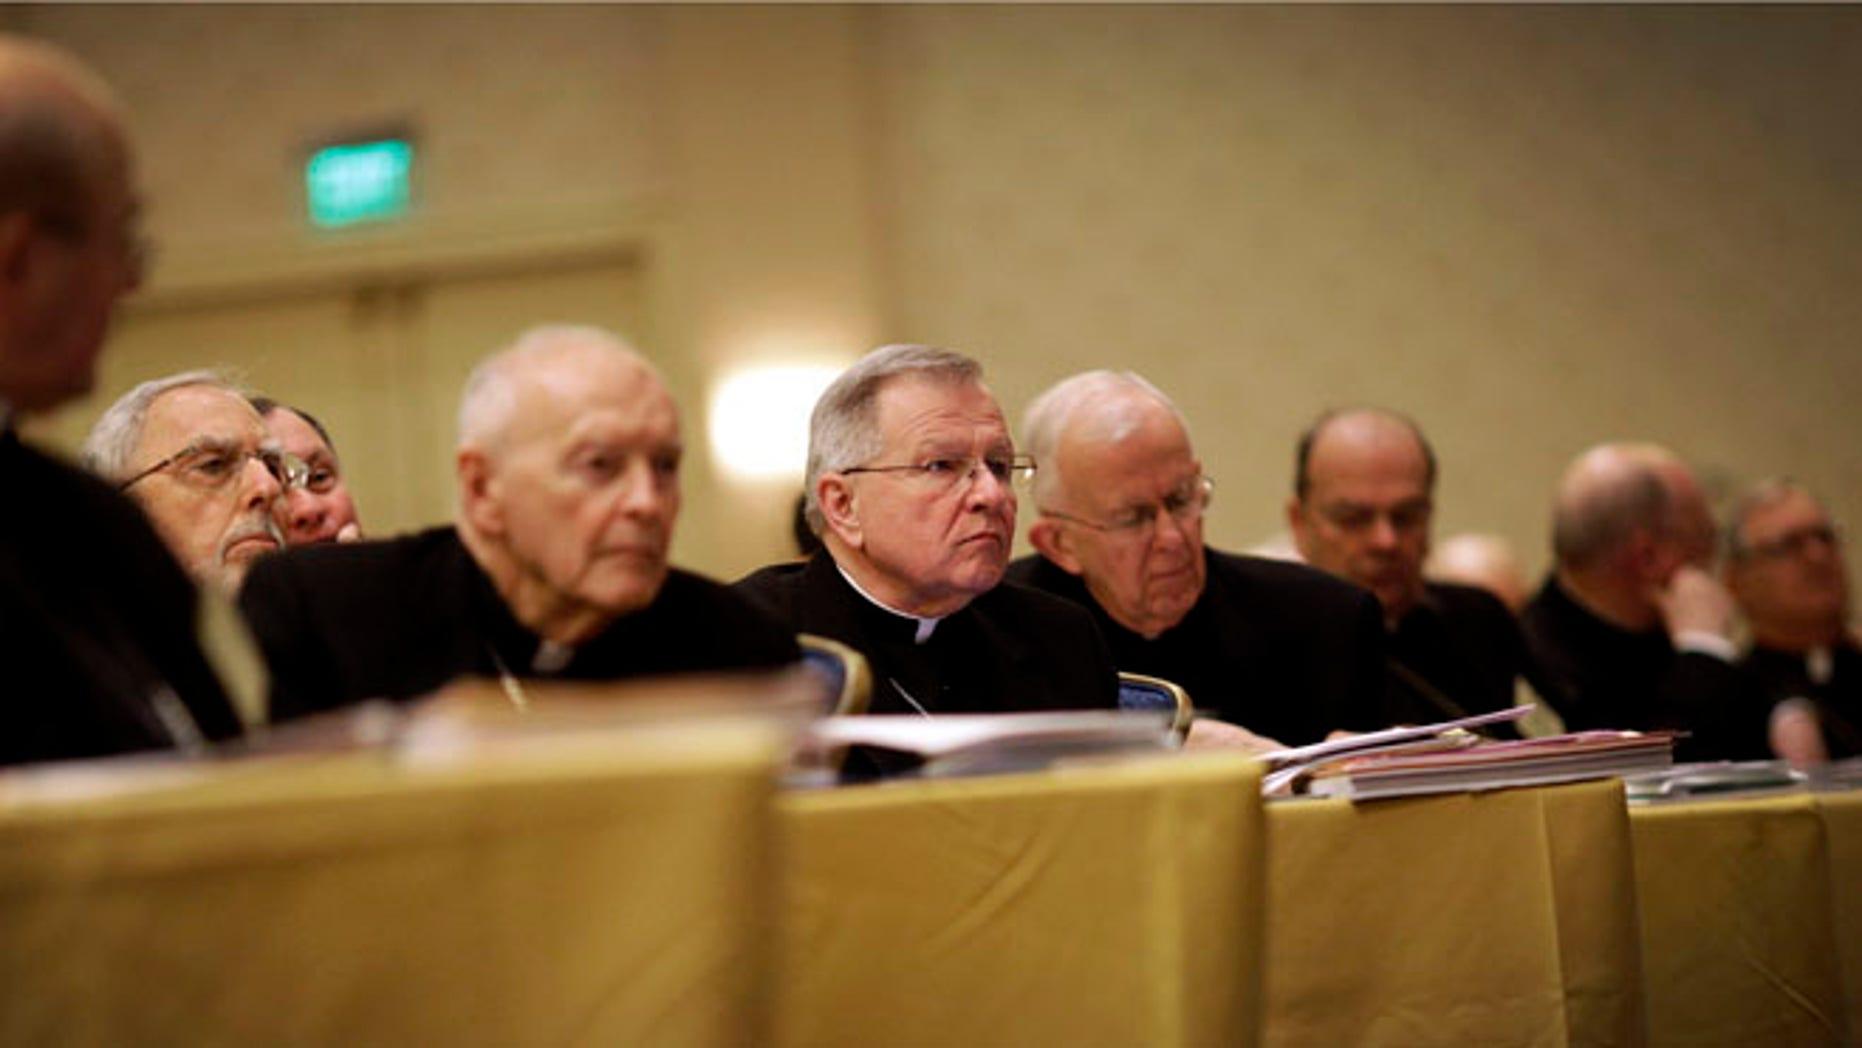 Nov. 11, 2013: Archbishop Gregory Aymond of New Orleans, center, listens to a report as he sits with fellow bishops at the United States Conference of Catholic Bishops' annual fall meeting in Baltimore.